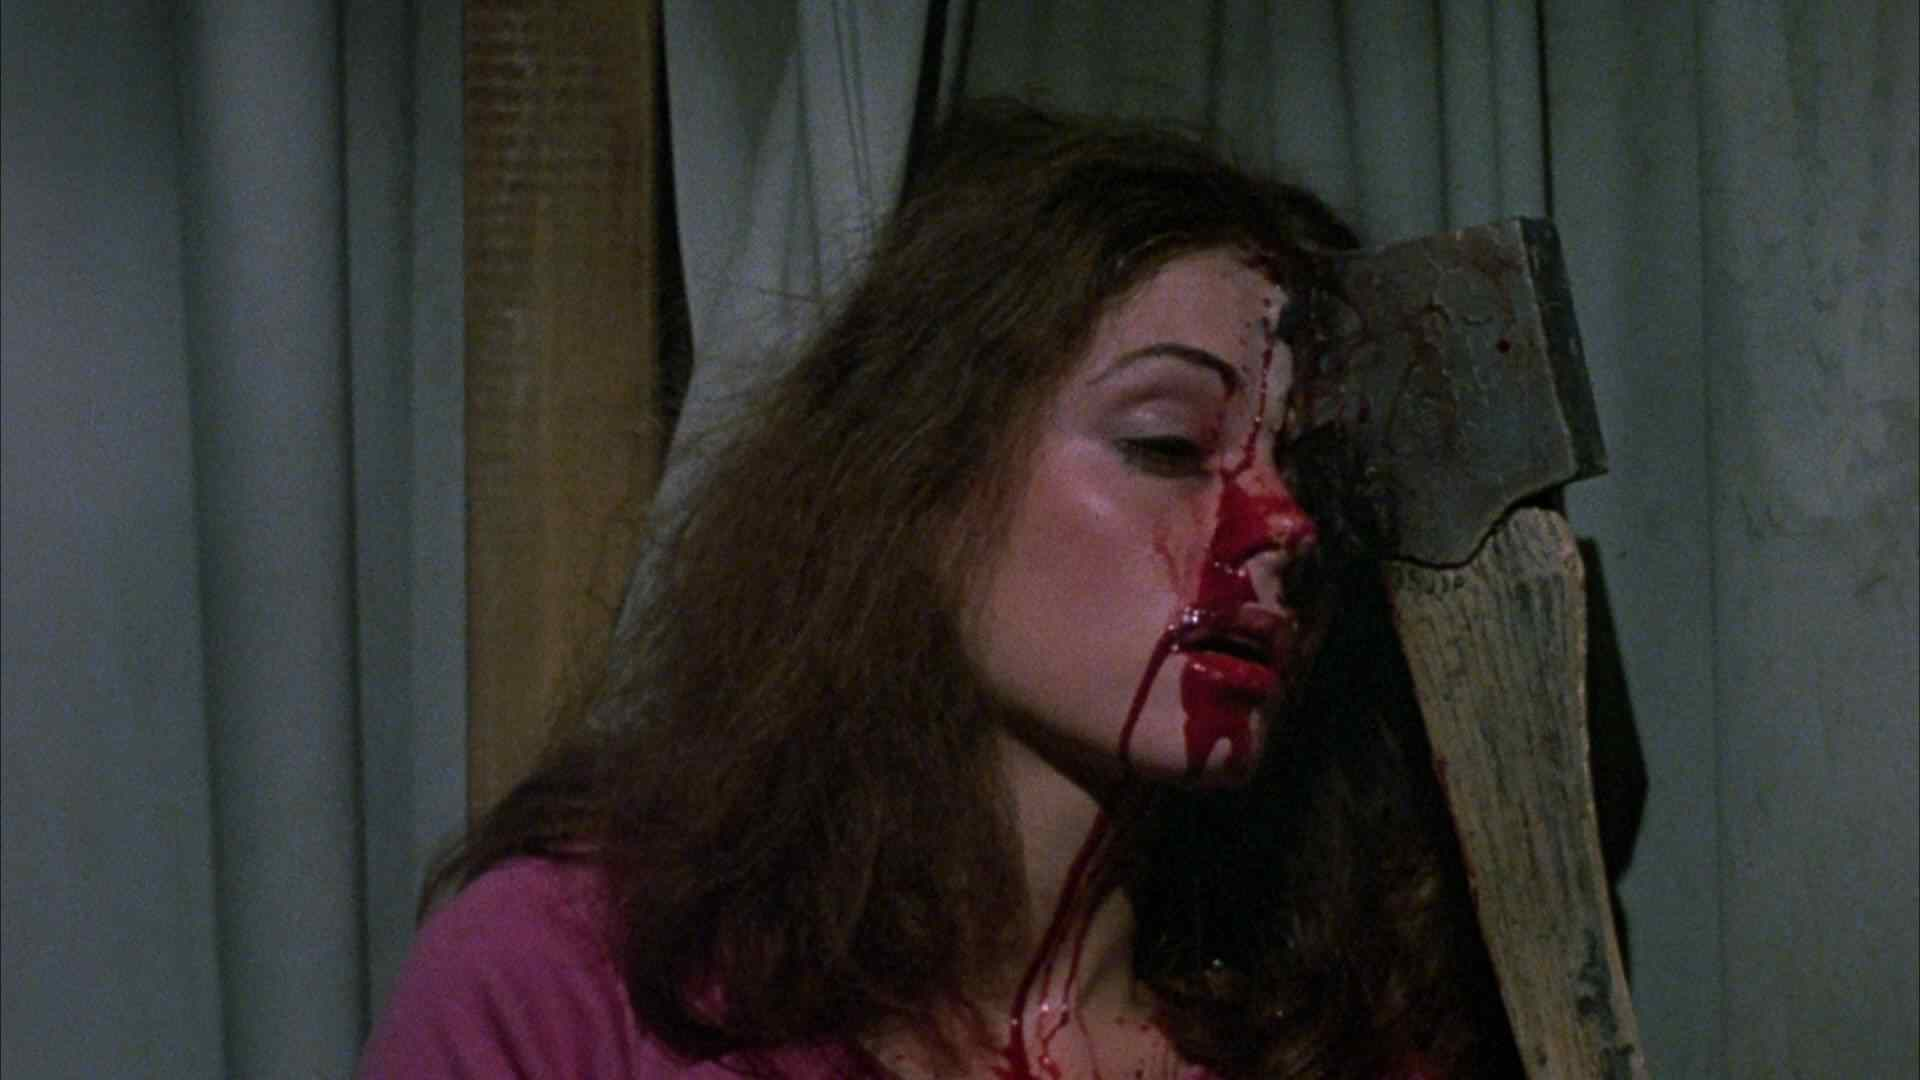 Marcie gets the ax in Friday the 13th